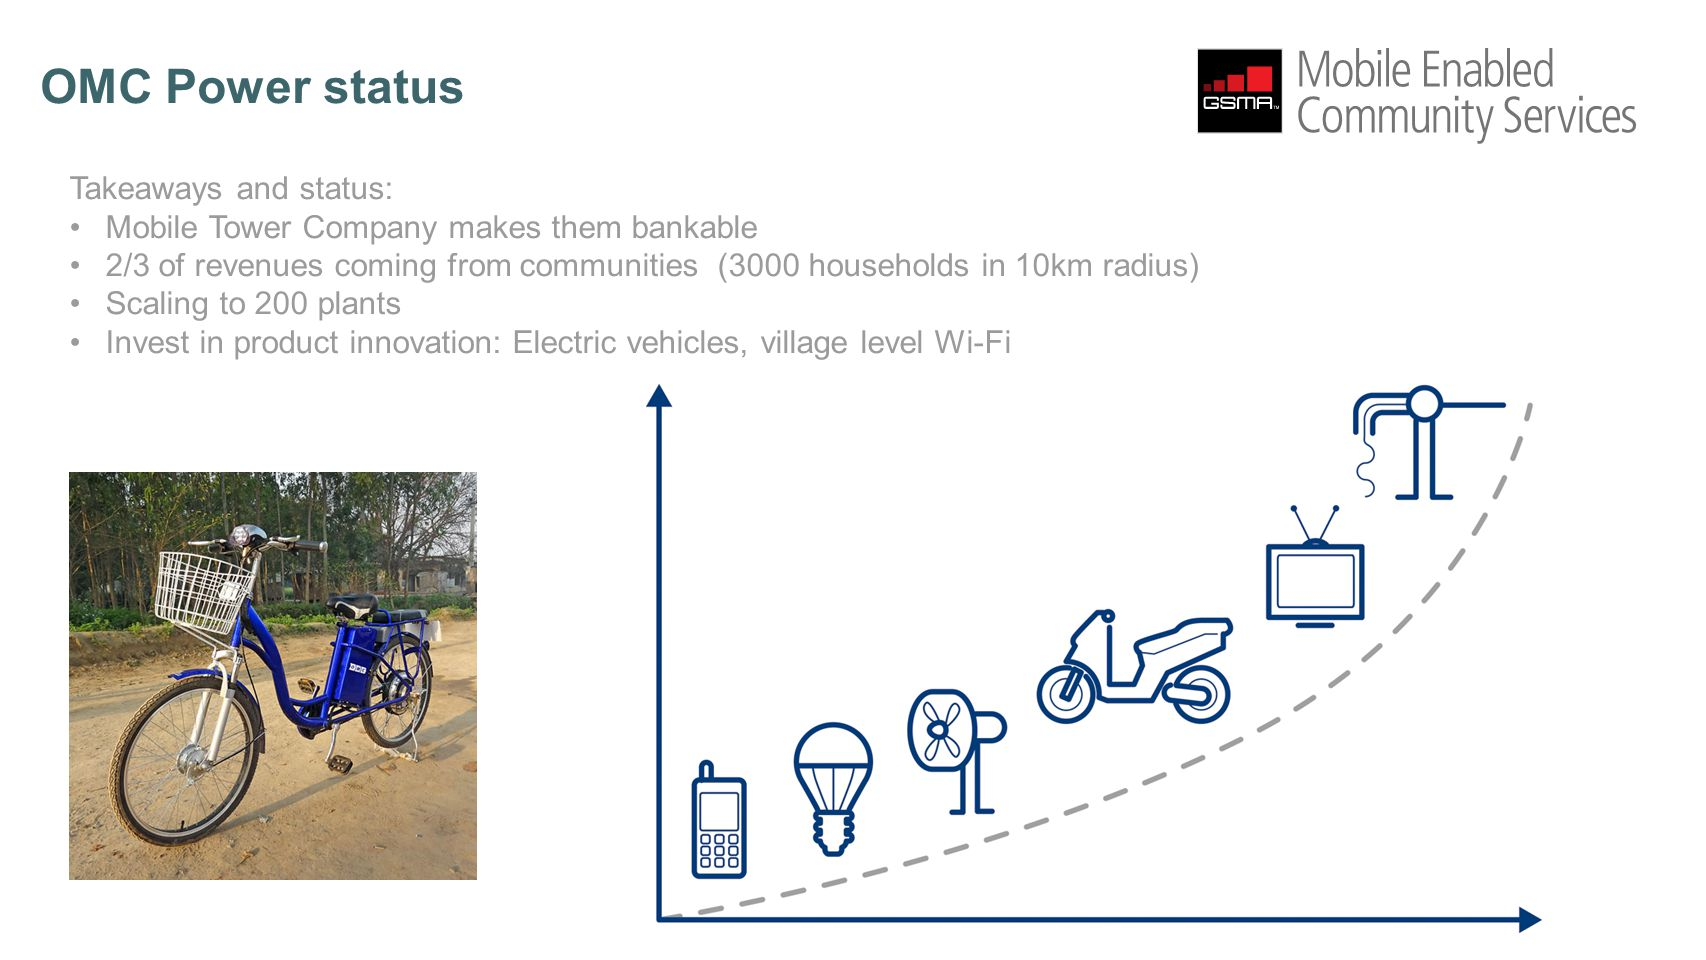 OMC Power status Takeaways and status: Mobile Tower Company makes them bankable 2/3 of revenues coming from communities (3000 households in 10km radius) Scaling to 200 plants Invest in product innovation: Electric vehicles, village level Wi-Fi